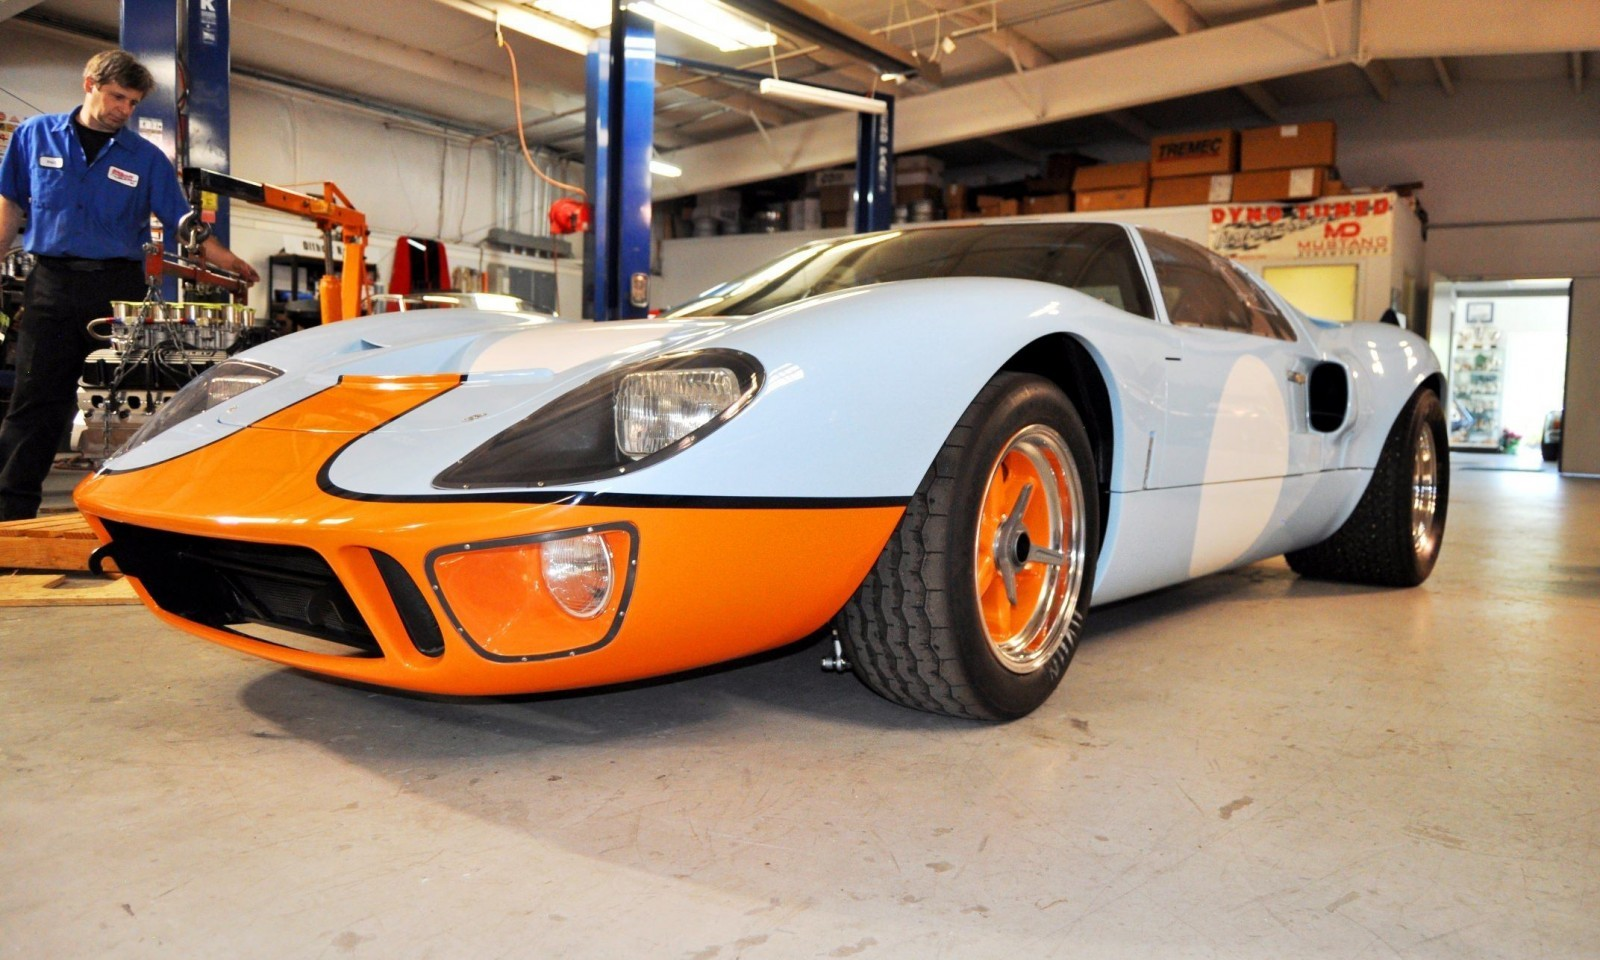 2014 Superformance GT40 Mark I - MEGA Photo Shoot and Ride-Along Videos 10